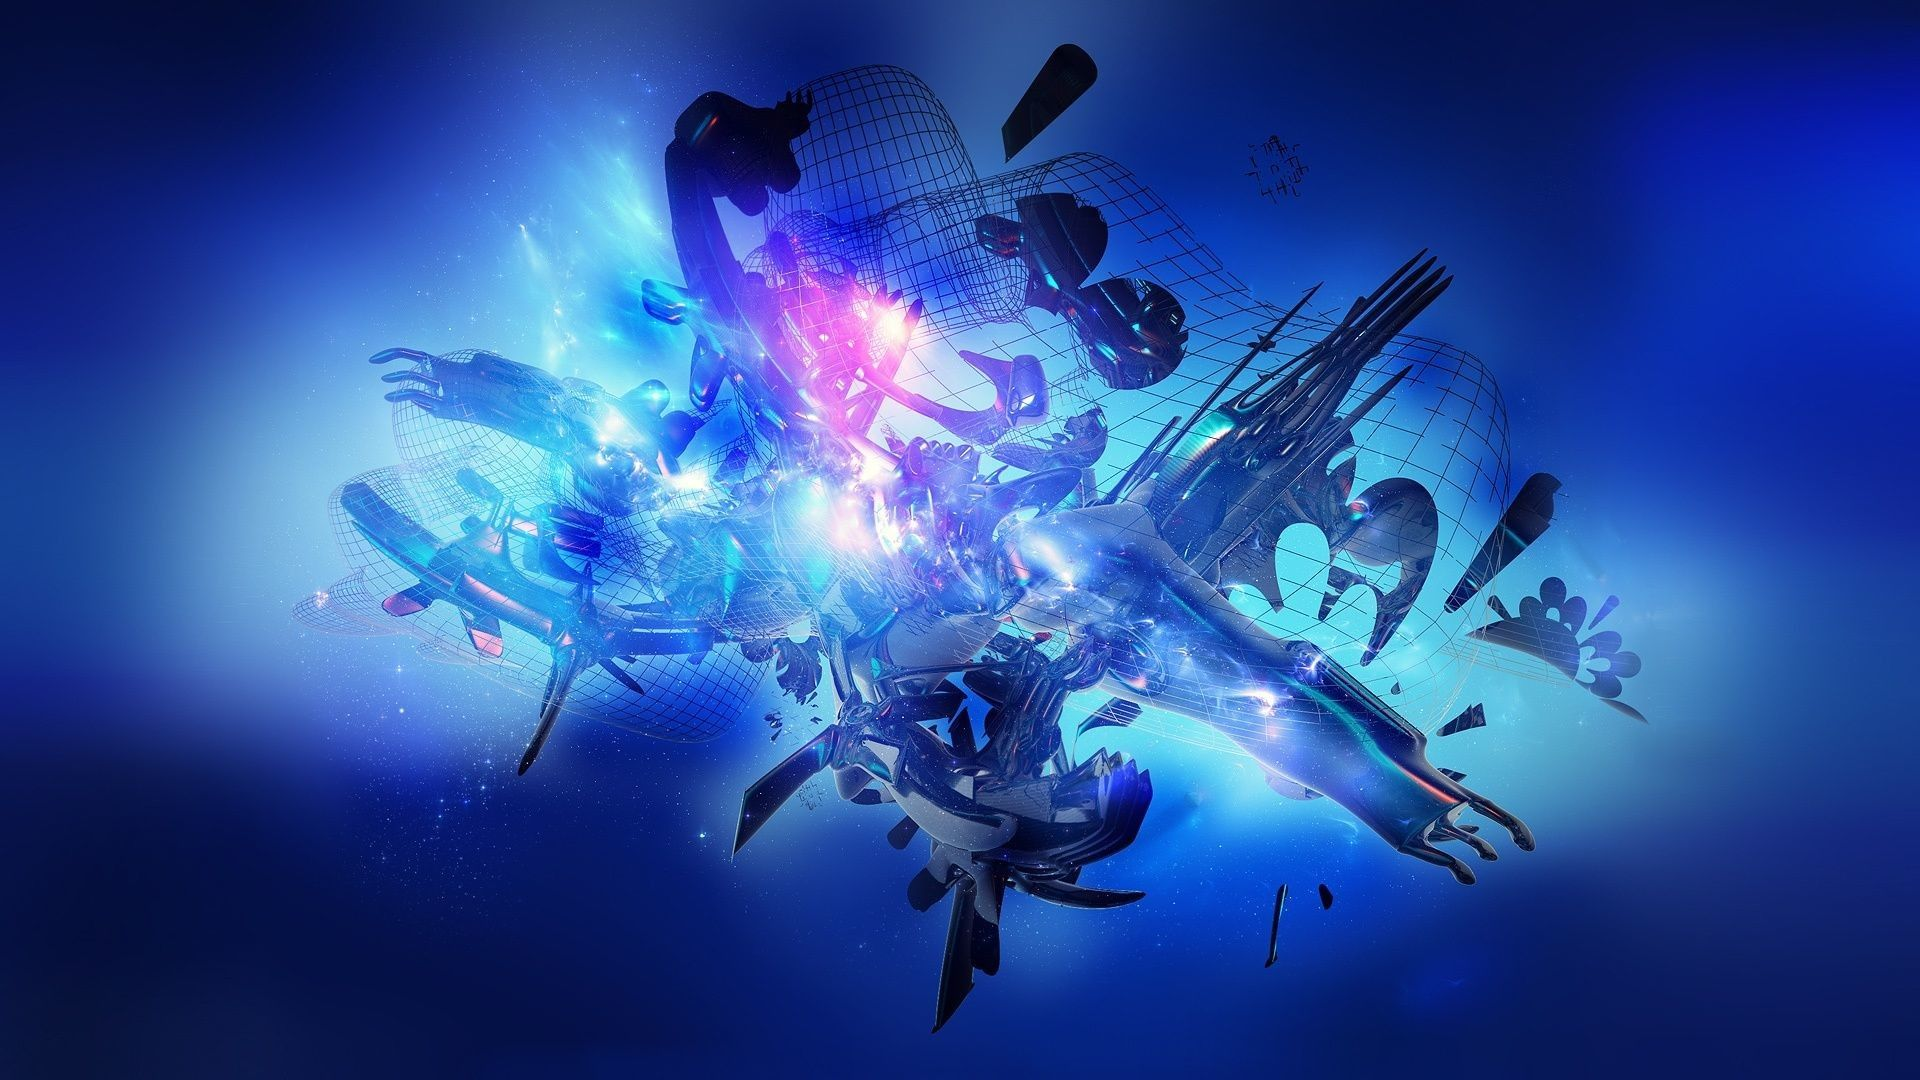 Cool Animated Pc Wallpaper